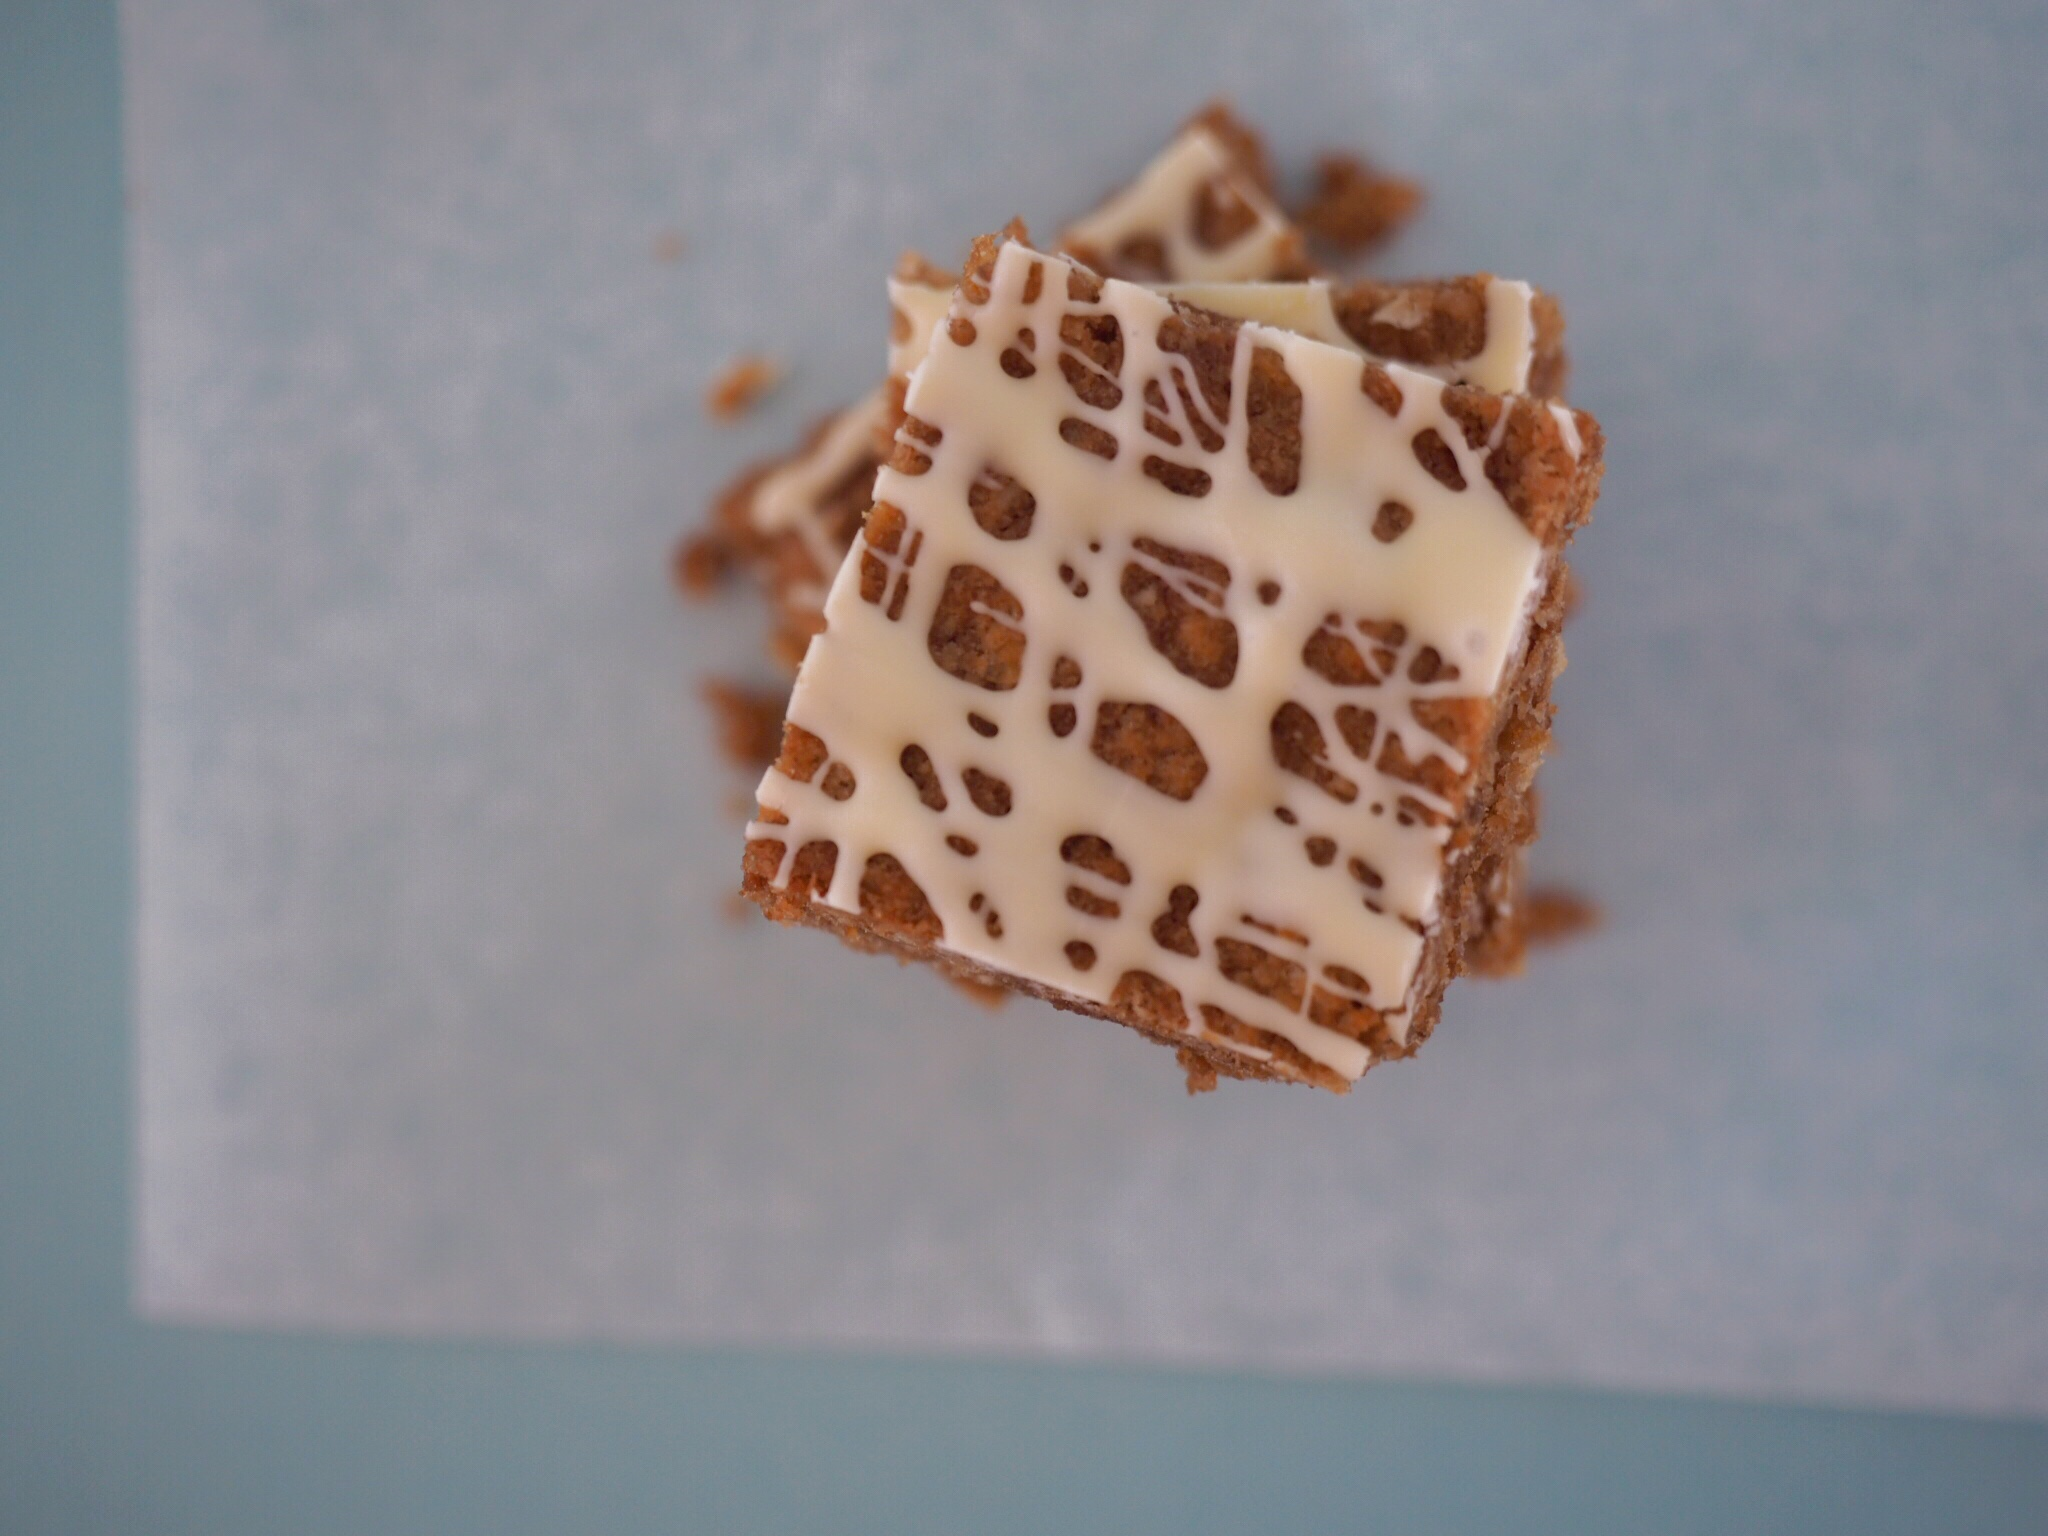 Crispy Nutella Weetbix Slice! This is EVERYTHING. It's super easy to make, delicious to eat and everyone loves it. And it's a no brainer, cos it's got Nutella in it. Yum.